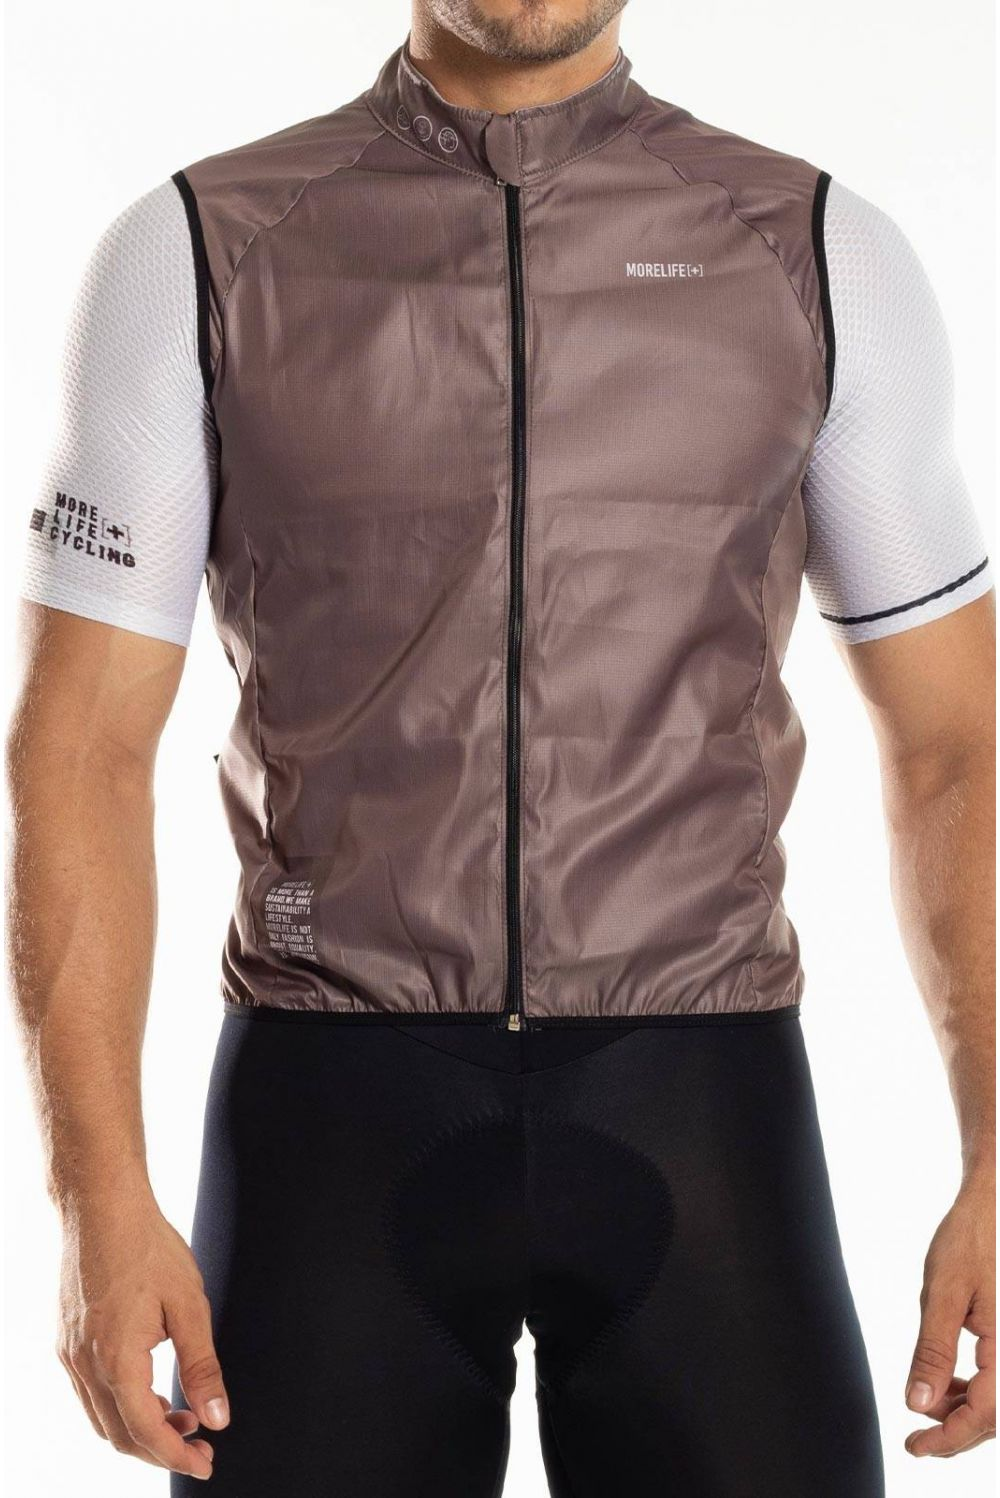 Light Coffee Windbreaker Vest CH007H